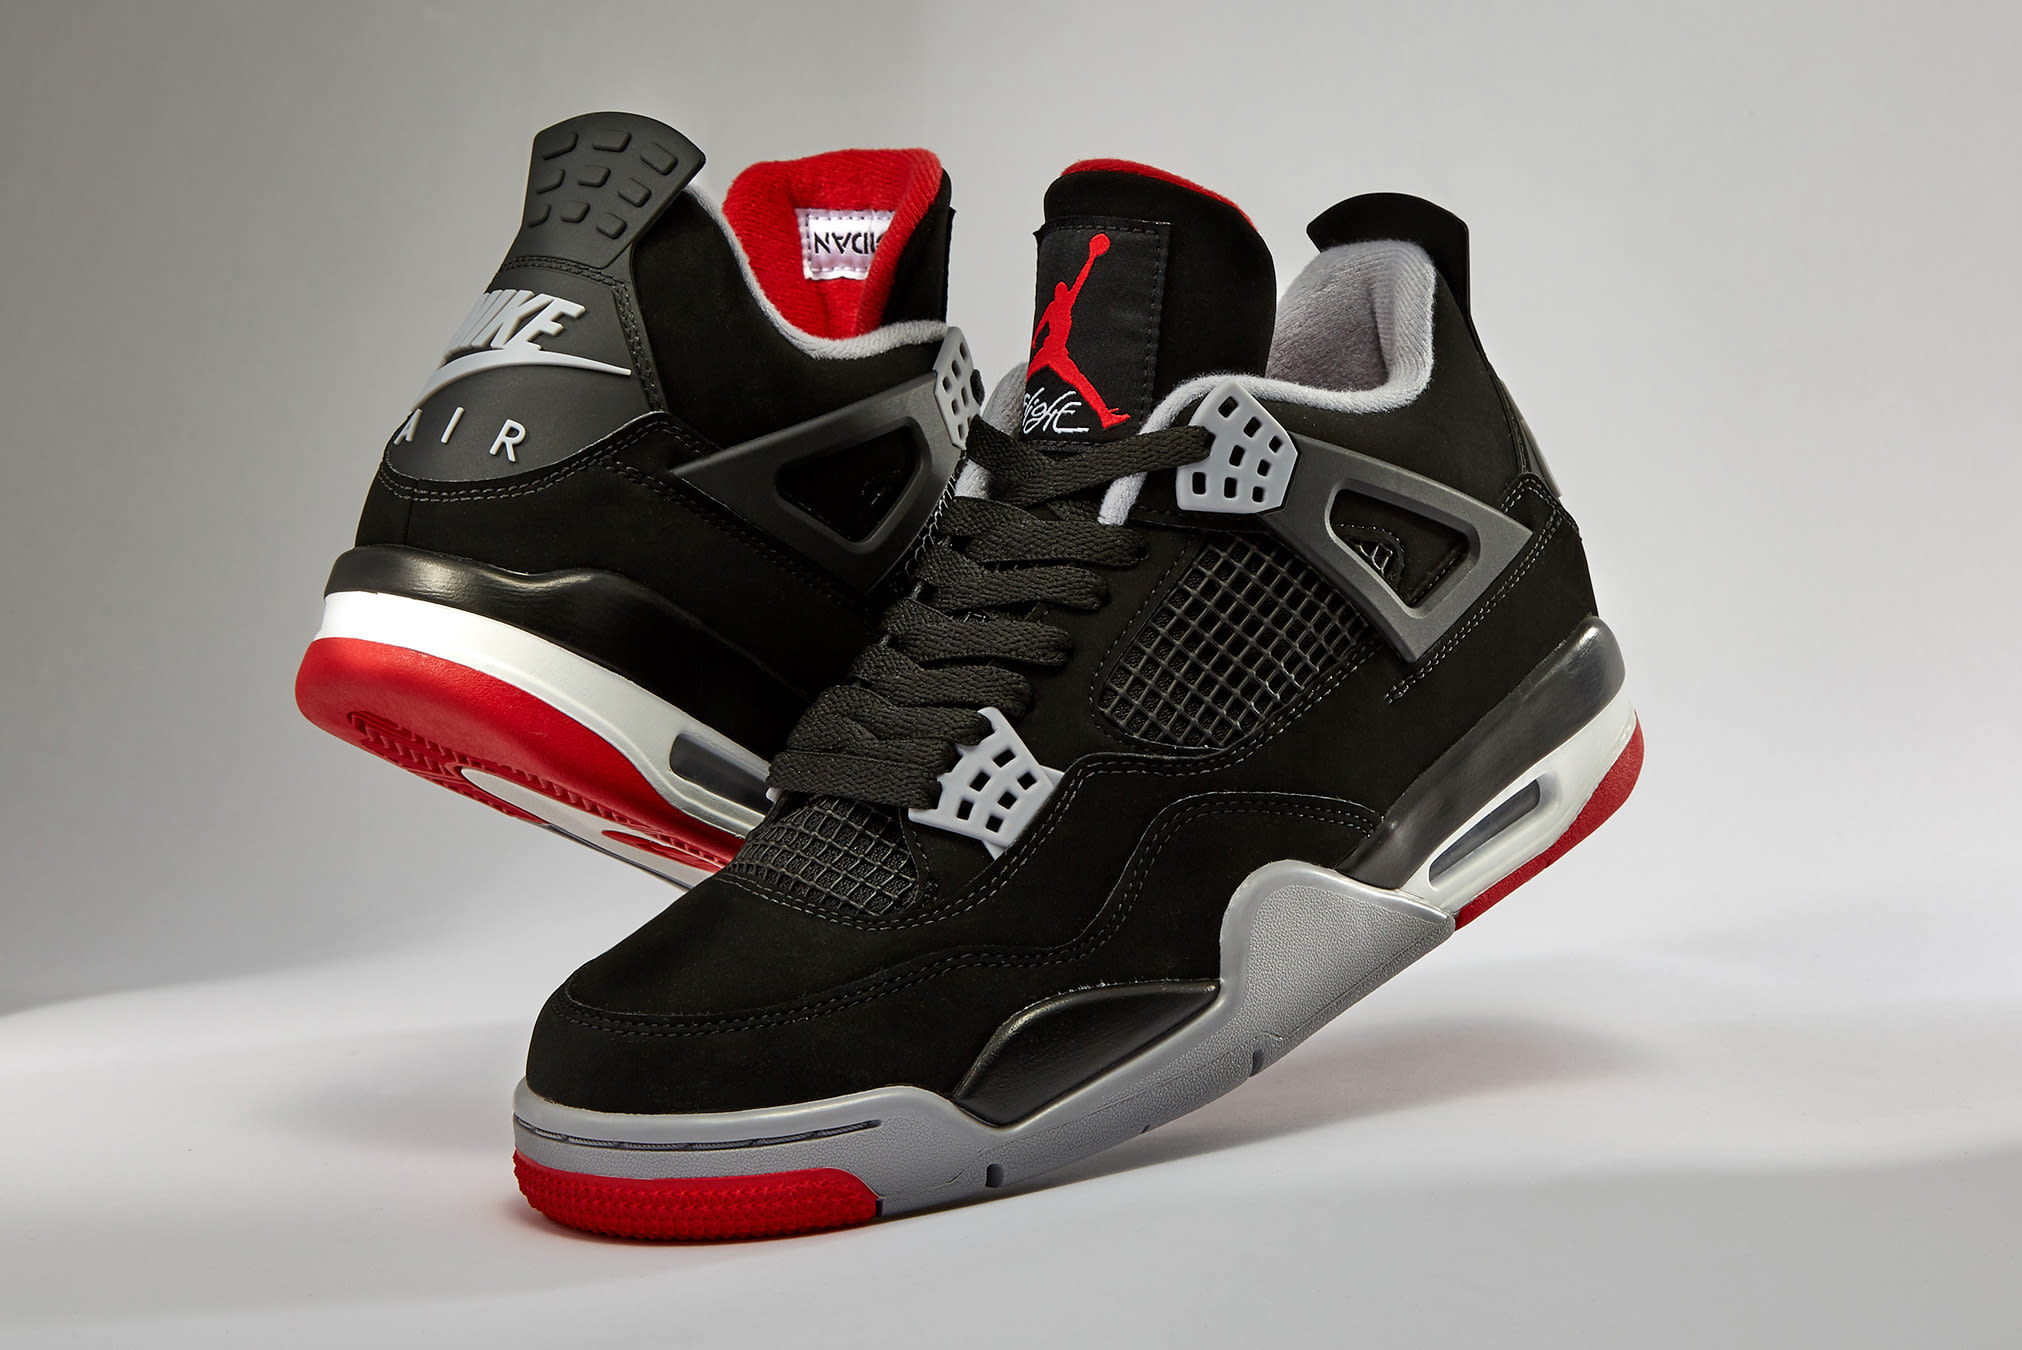 wholesale dealer a90b3 52383 A retro classic direct from the archives, Nike s Jumpman brand reissues the  iconic  Bred  rendition of the Air Jordan 4 with  Nike Air  detailing on  the ...